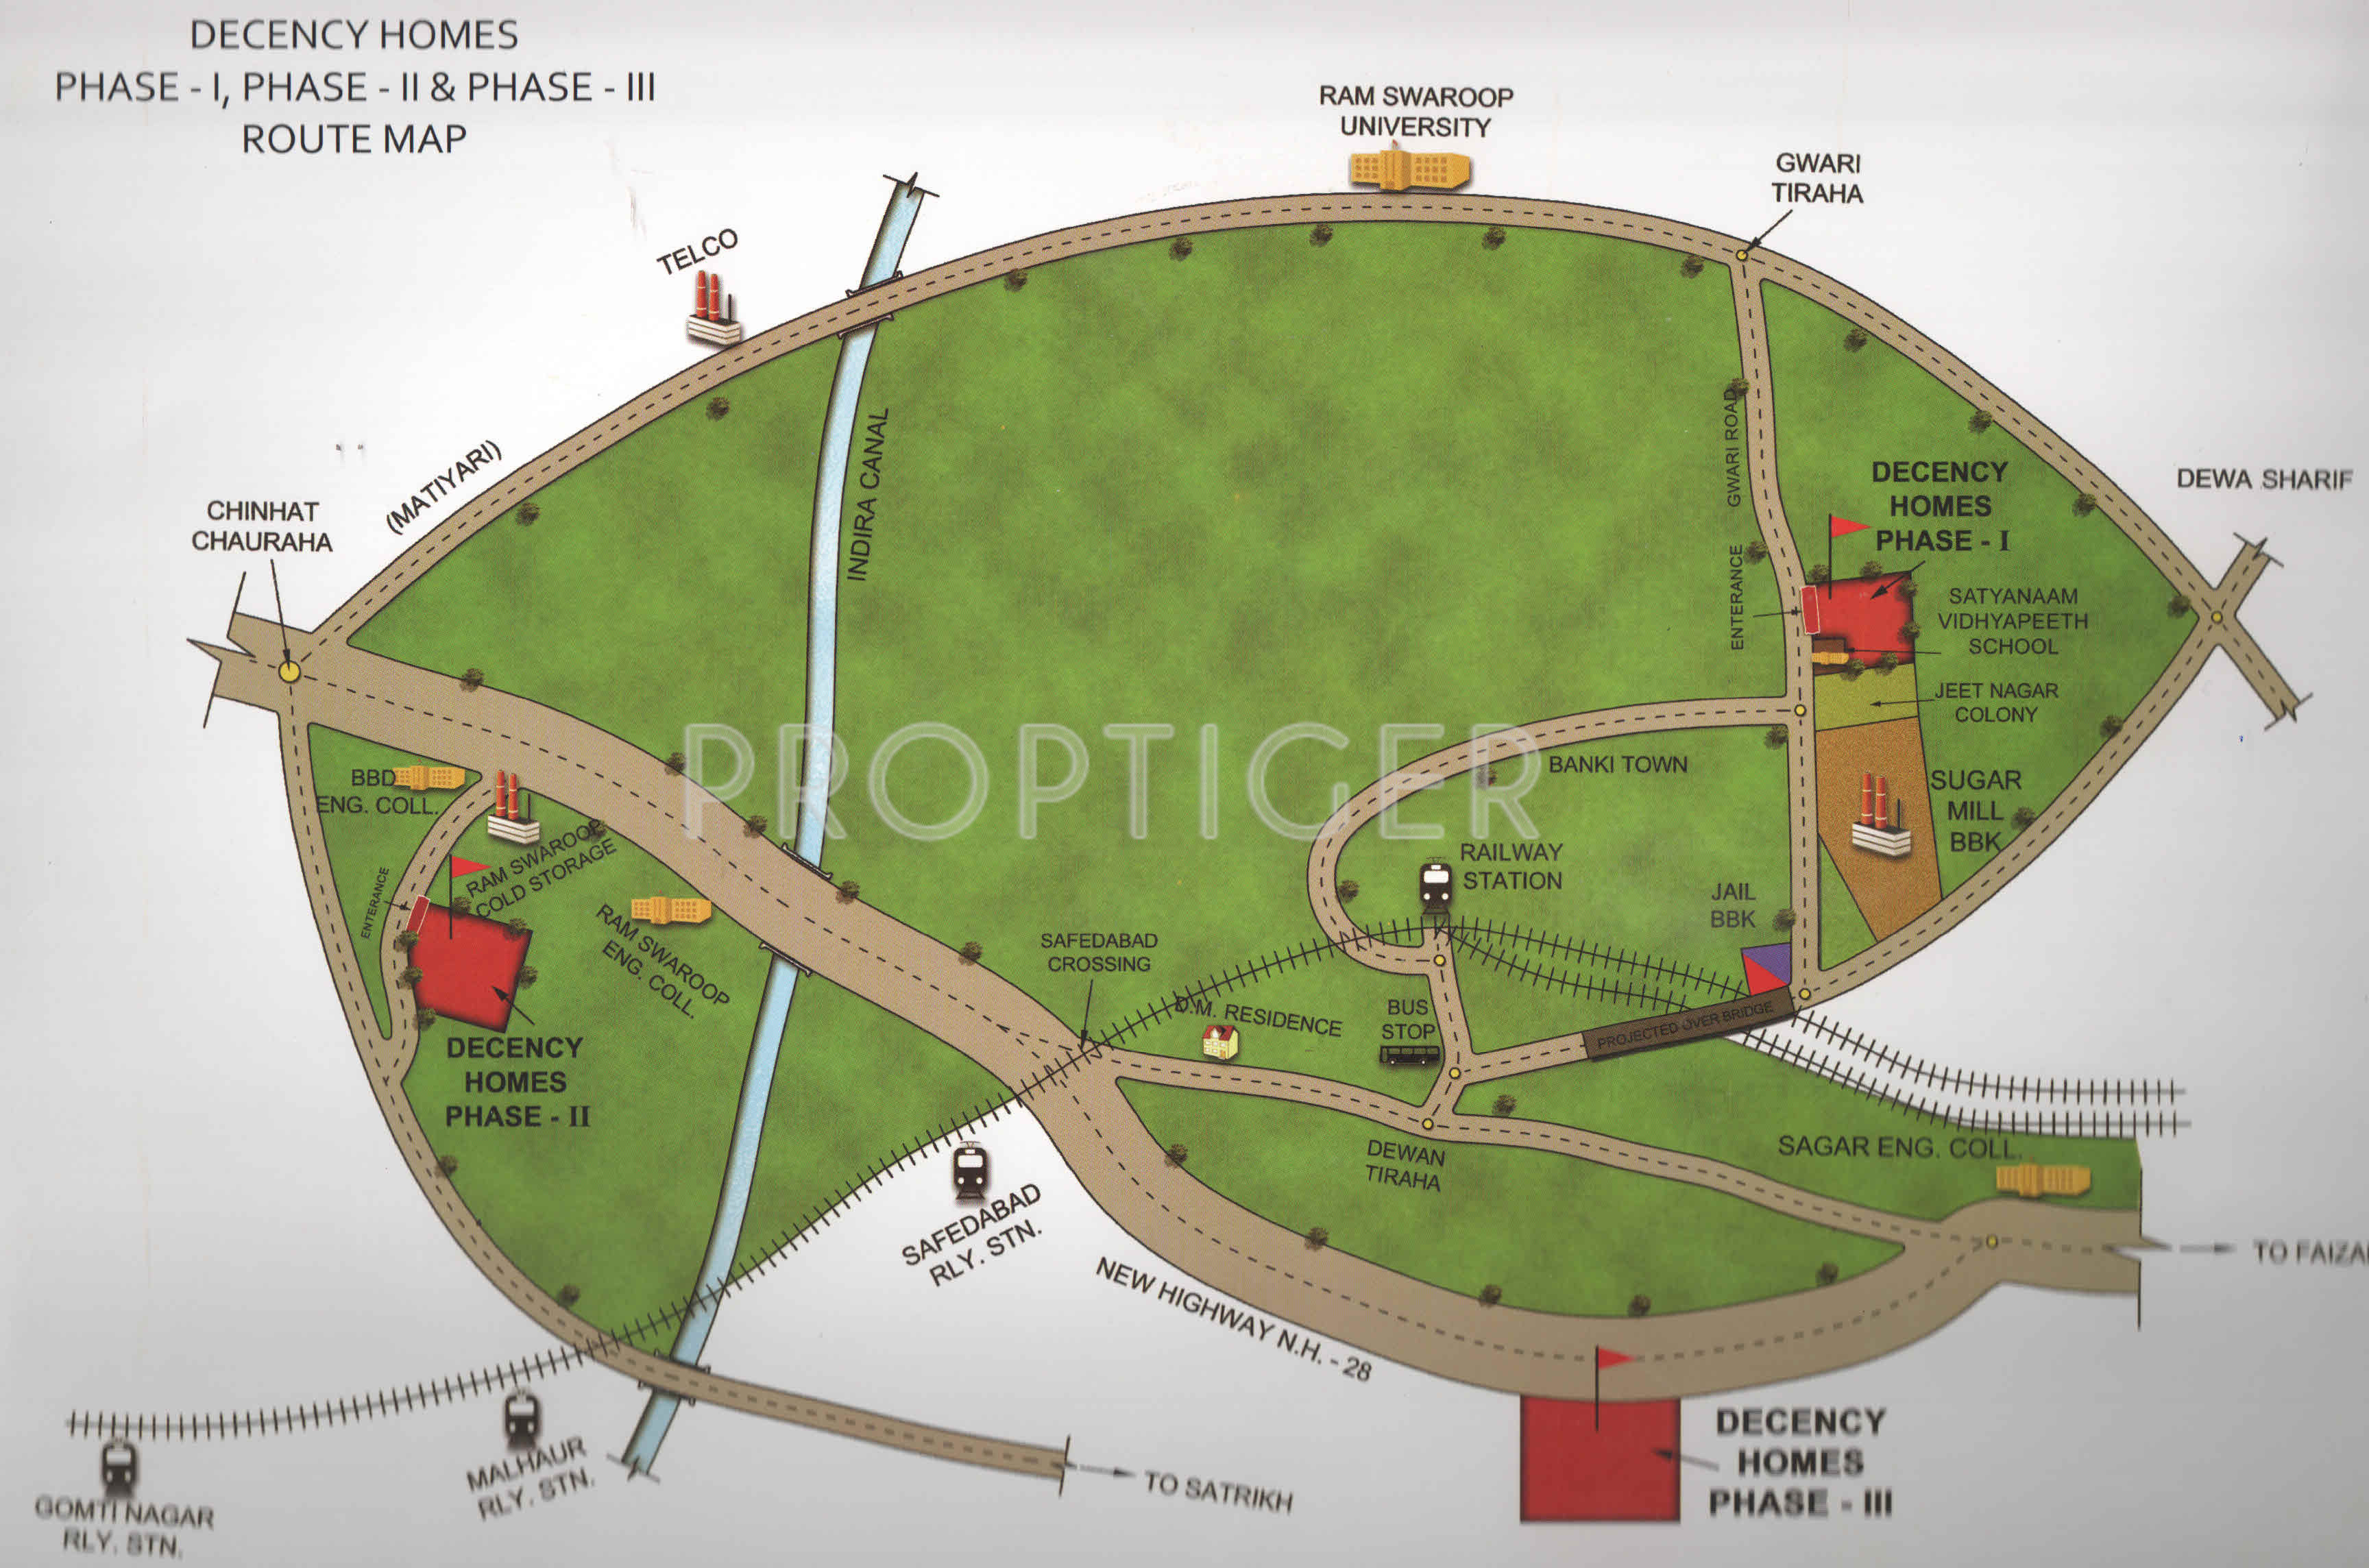 1000 sq ft Plot for Sale in Decency Homes Phase 1 Gadia Lucknow